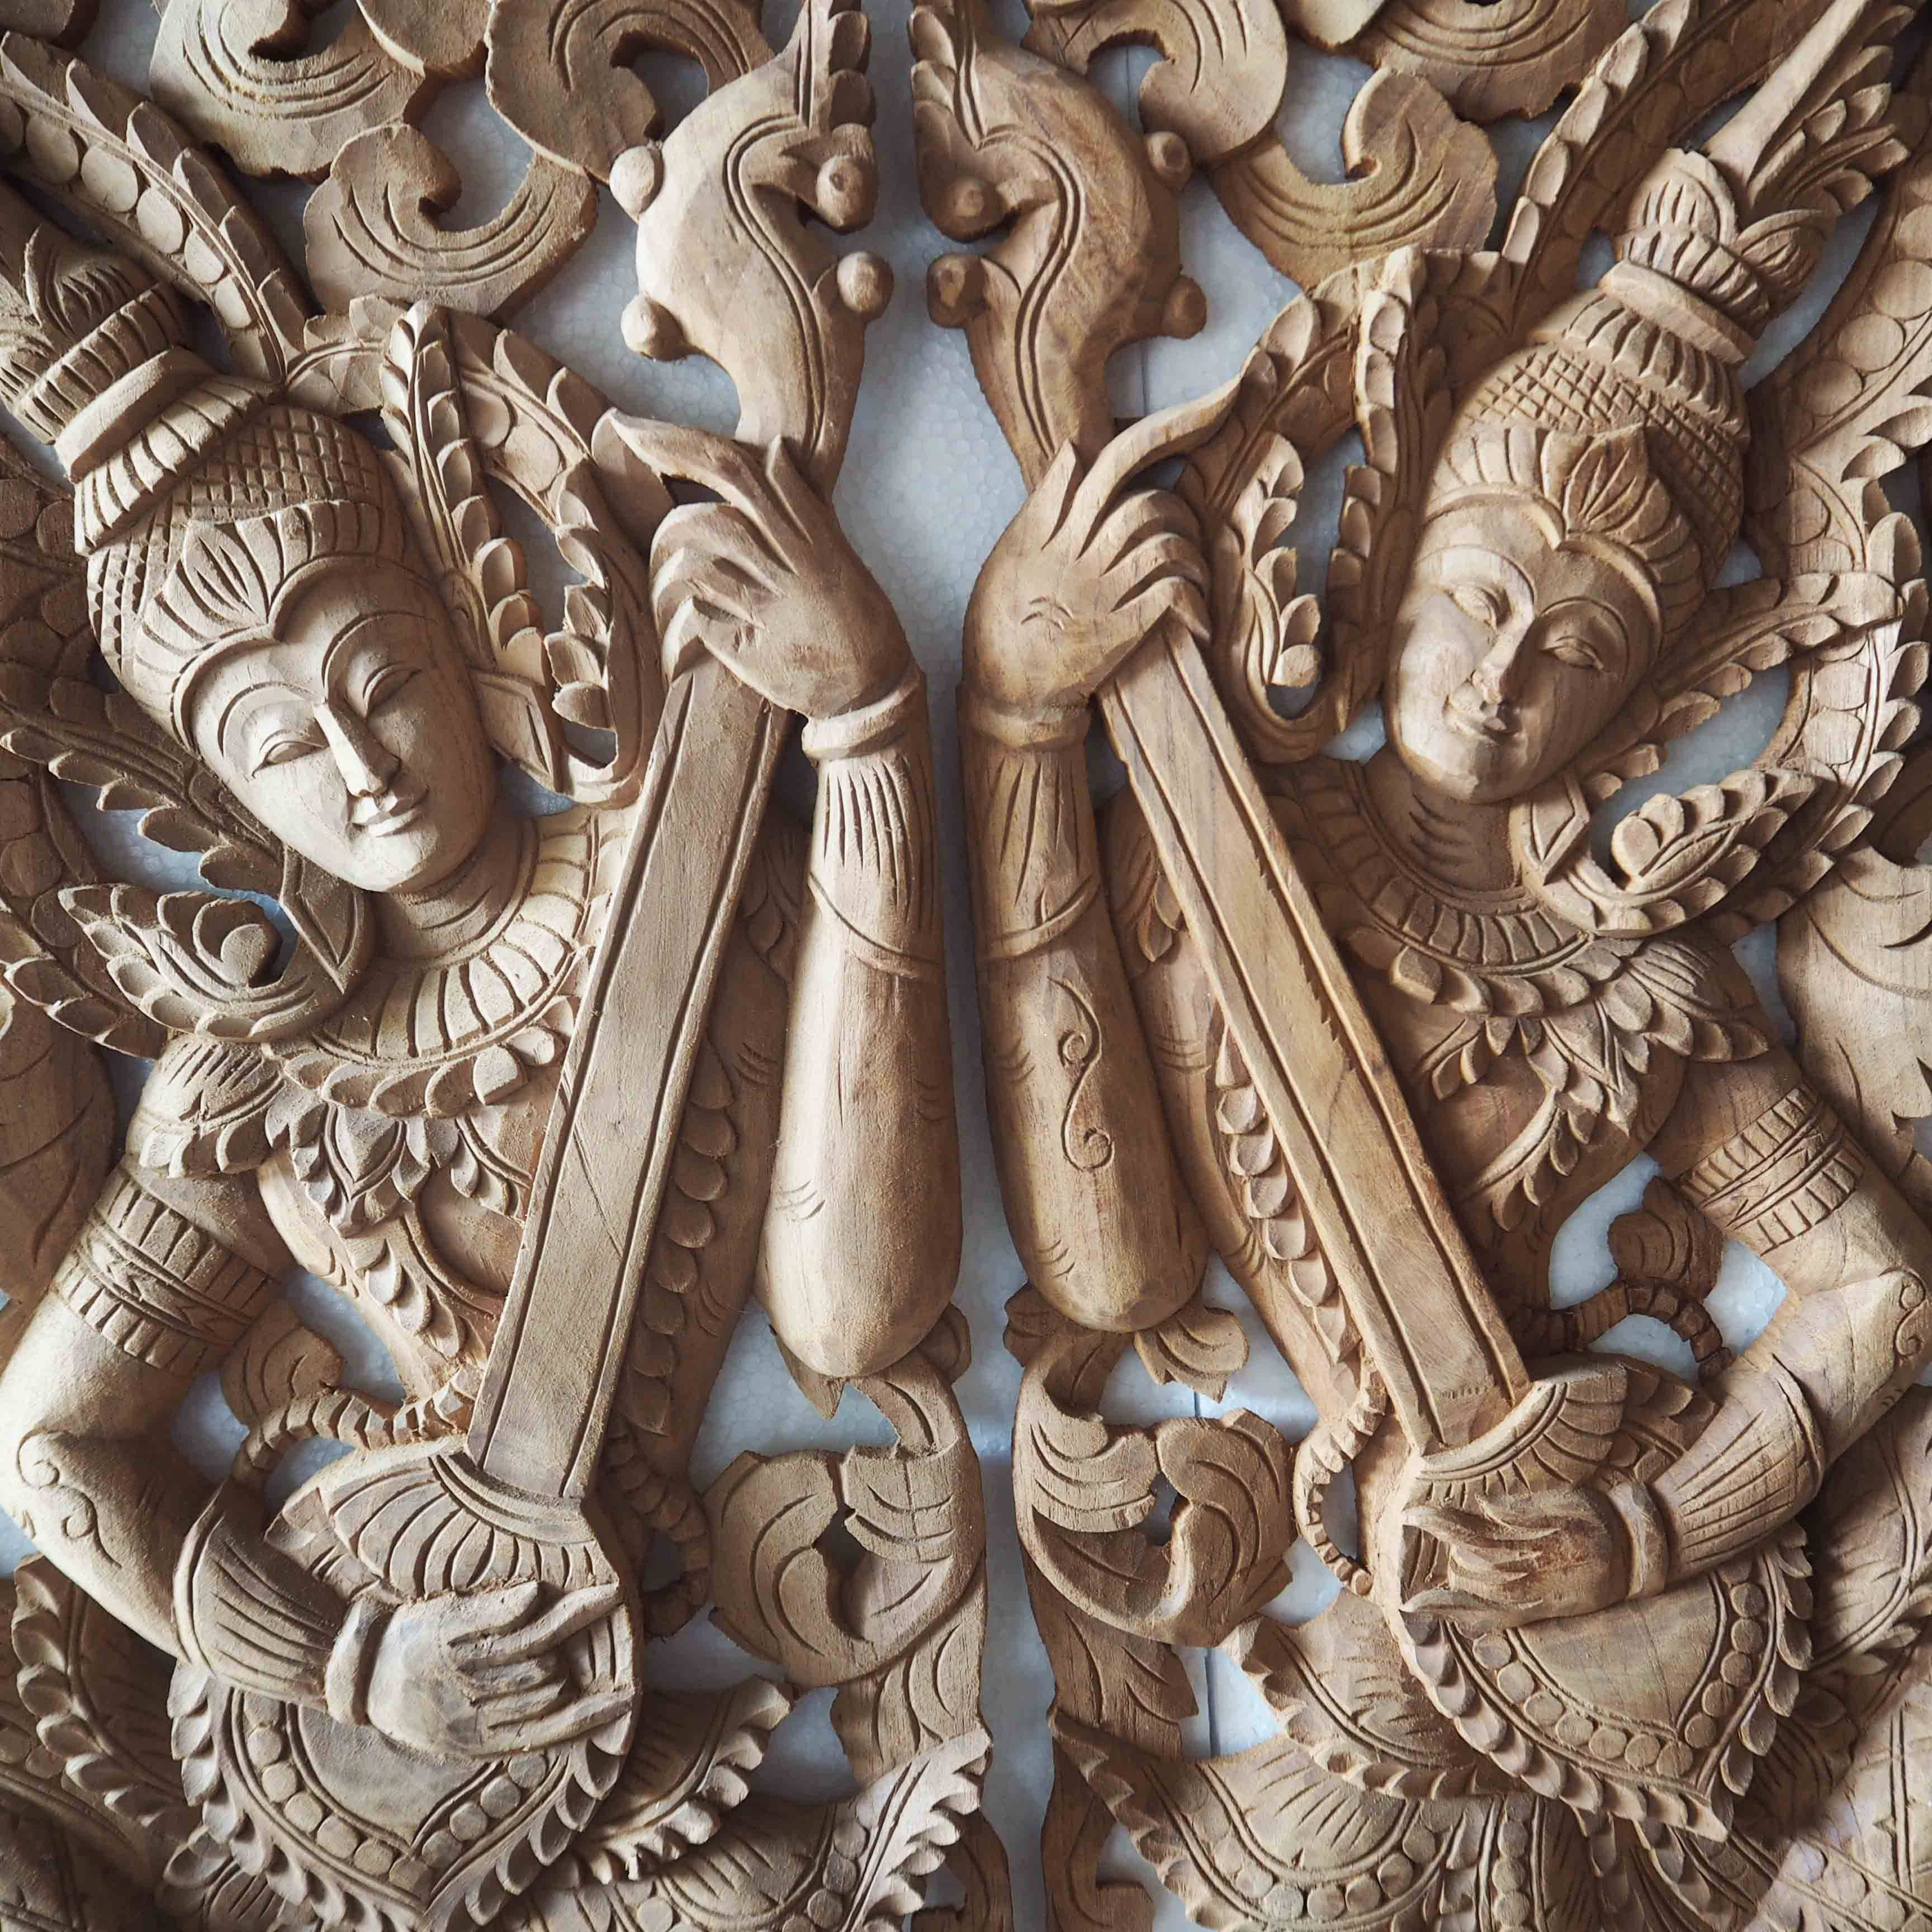 Pair Of Wooden Wall Art Panel From Thailand – Siam Sawadee In Most Popular Wood Wall Art Panels (View 12 of 20)